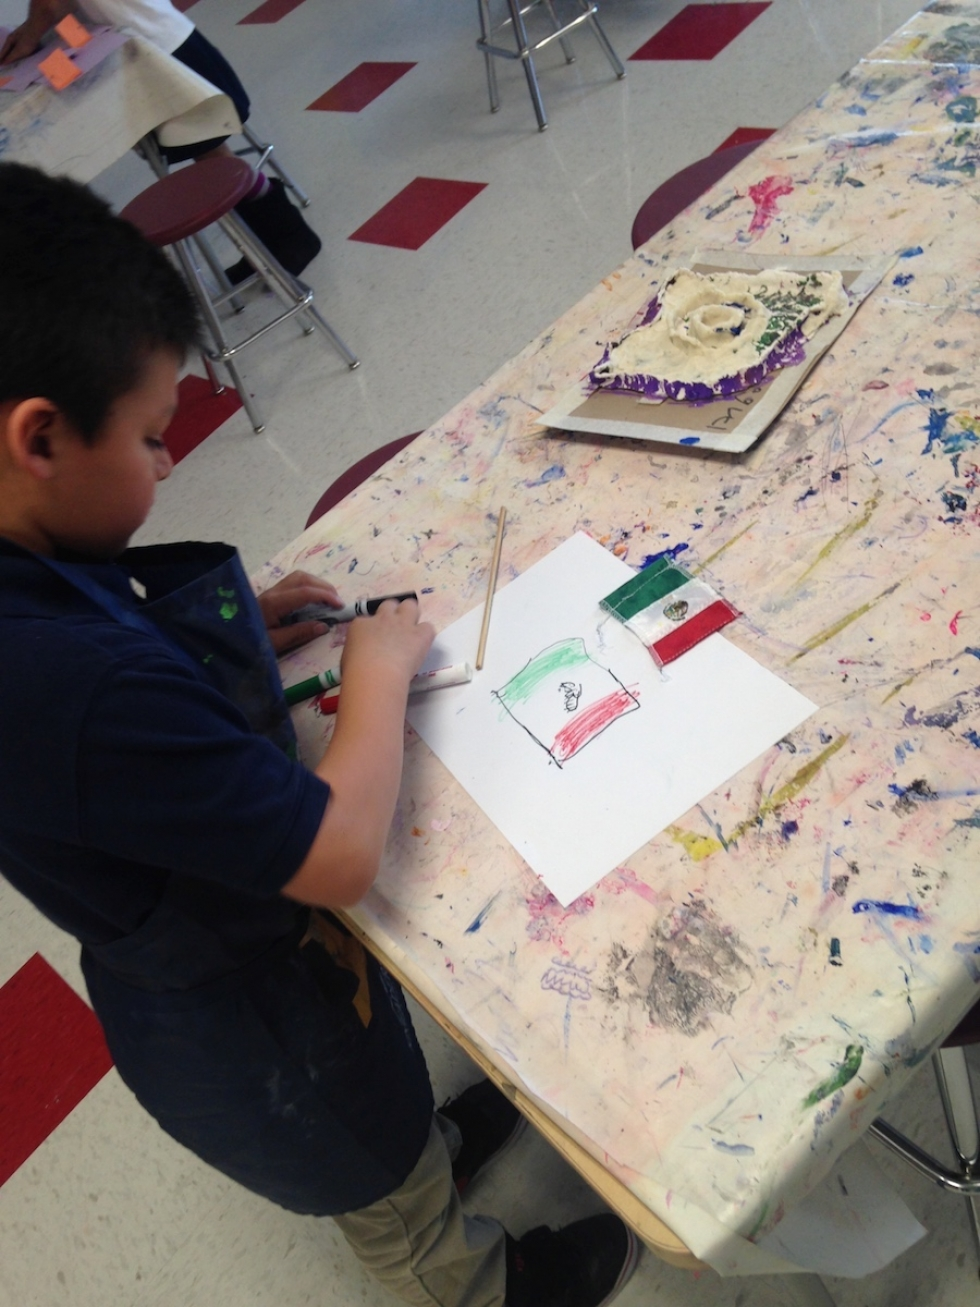 A student at Guadalupe School uses art to explore his culture and embrace diversity.